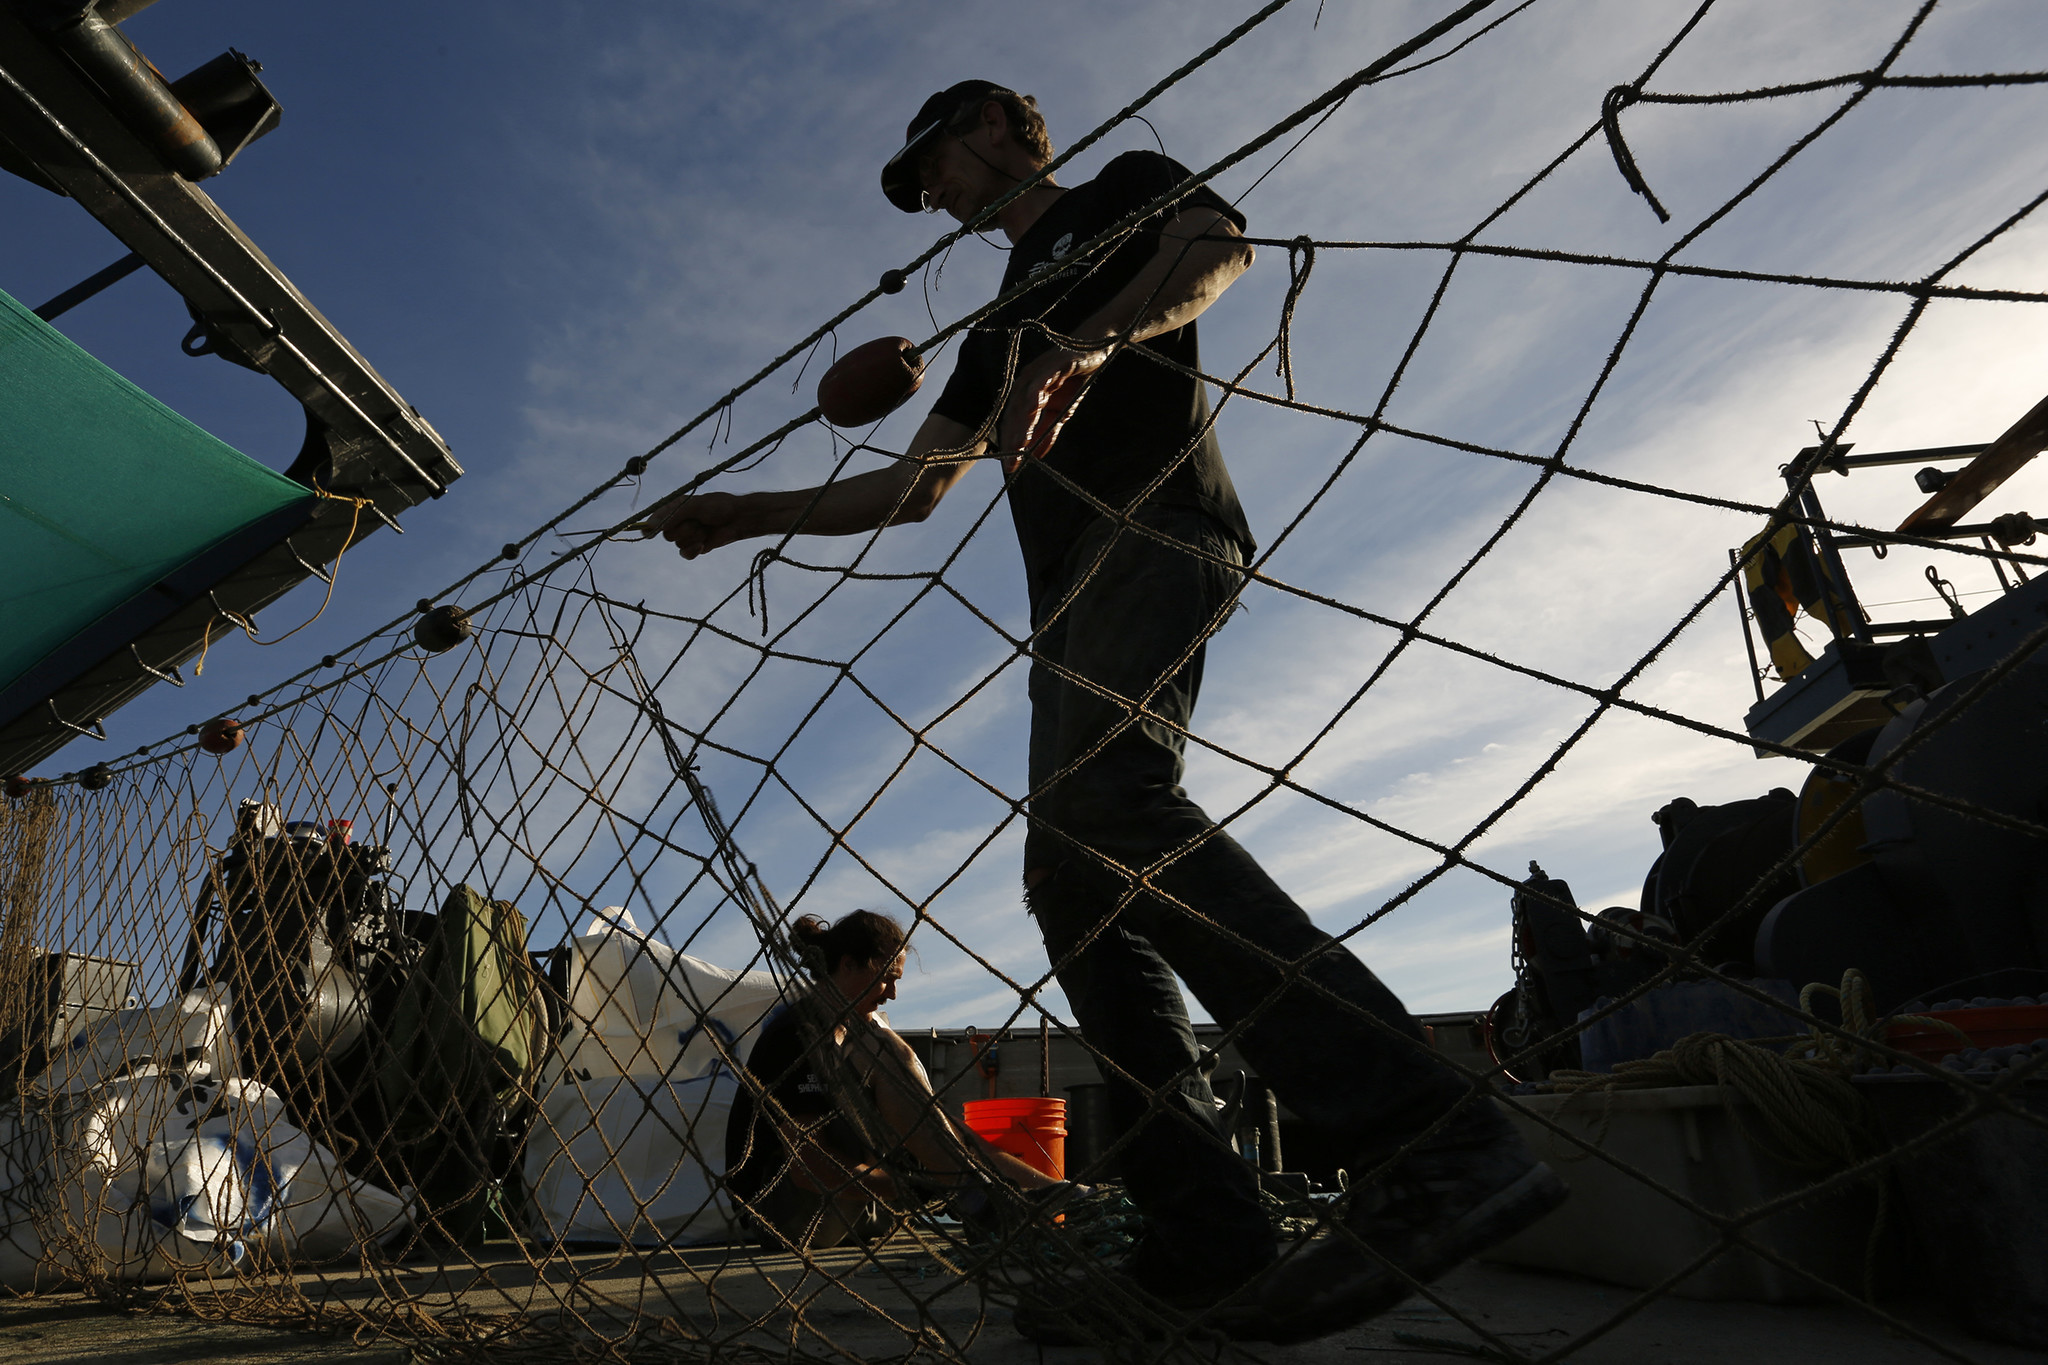 Sea Shepherd activists work to break down illegal gill nets and other illegal fishing lines used by